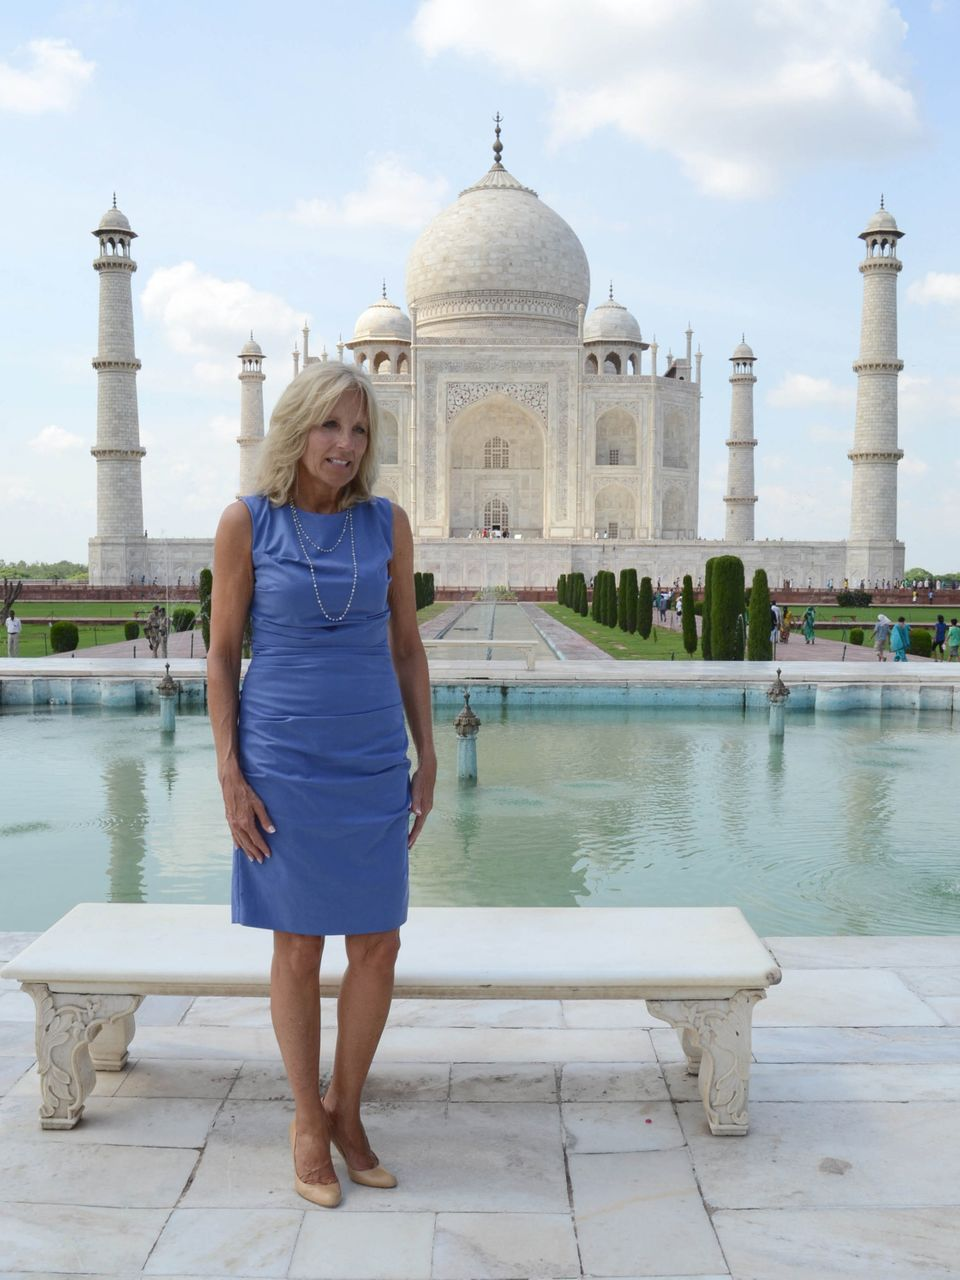 Jill Biden, wife of US Vice President Joe Biden, poses during a visit to the Taj Mahal monument in Agra on July 23, 2013.   (